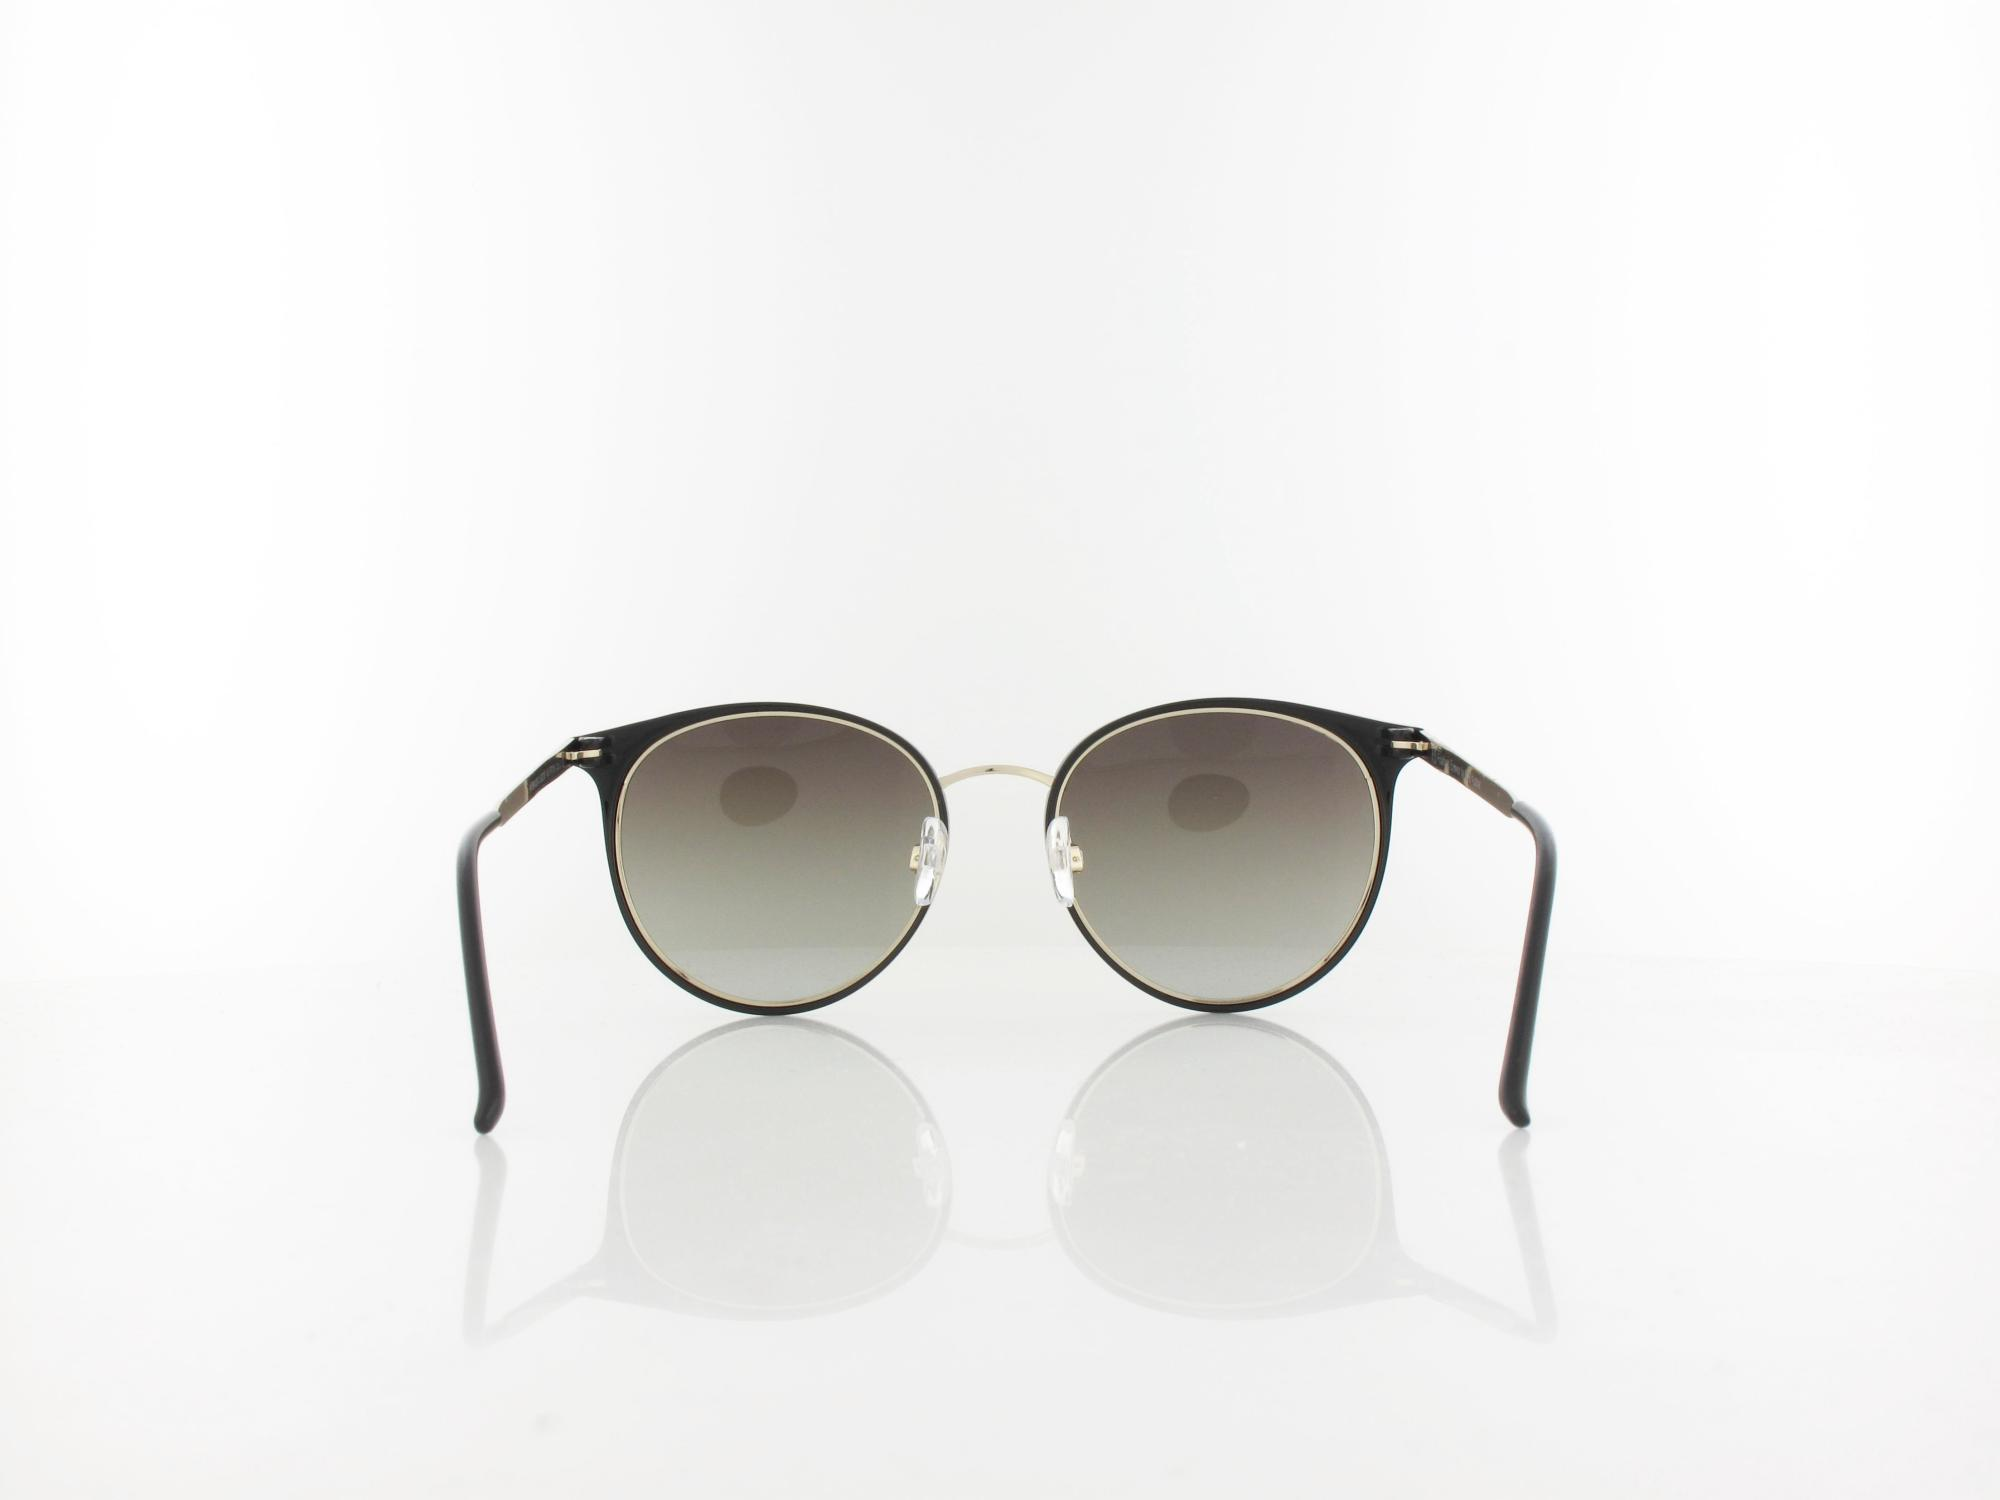 HIS polarized | HPS94120-3 53 | black / green gradient polarized